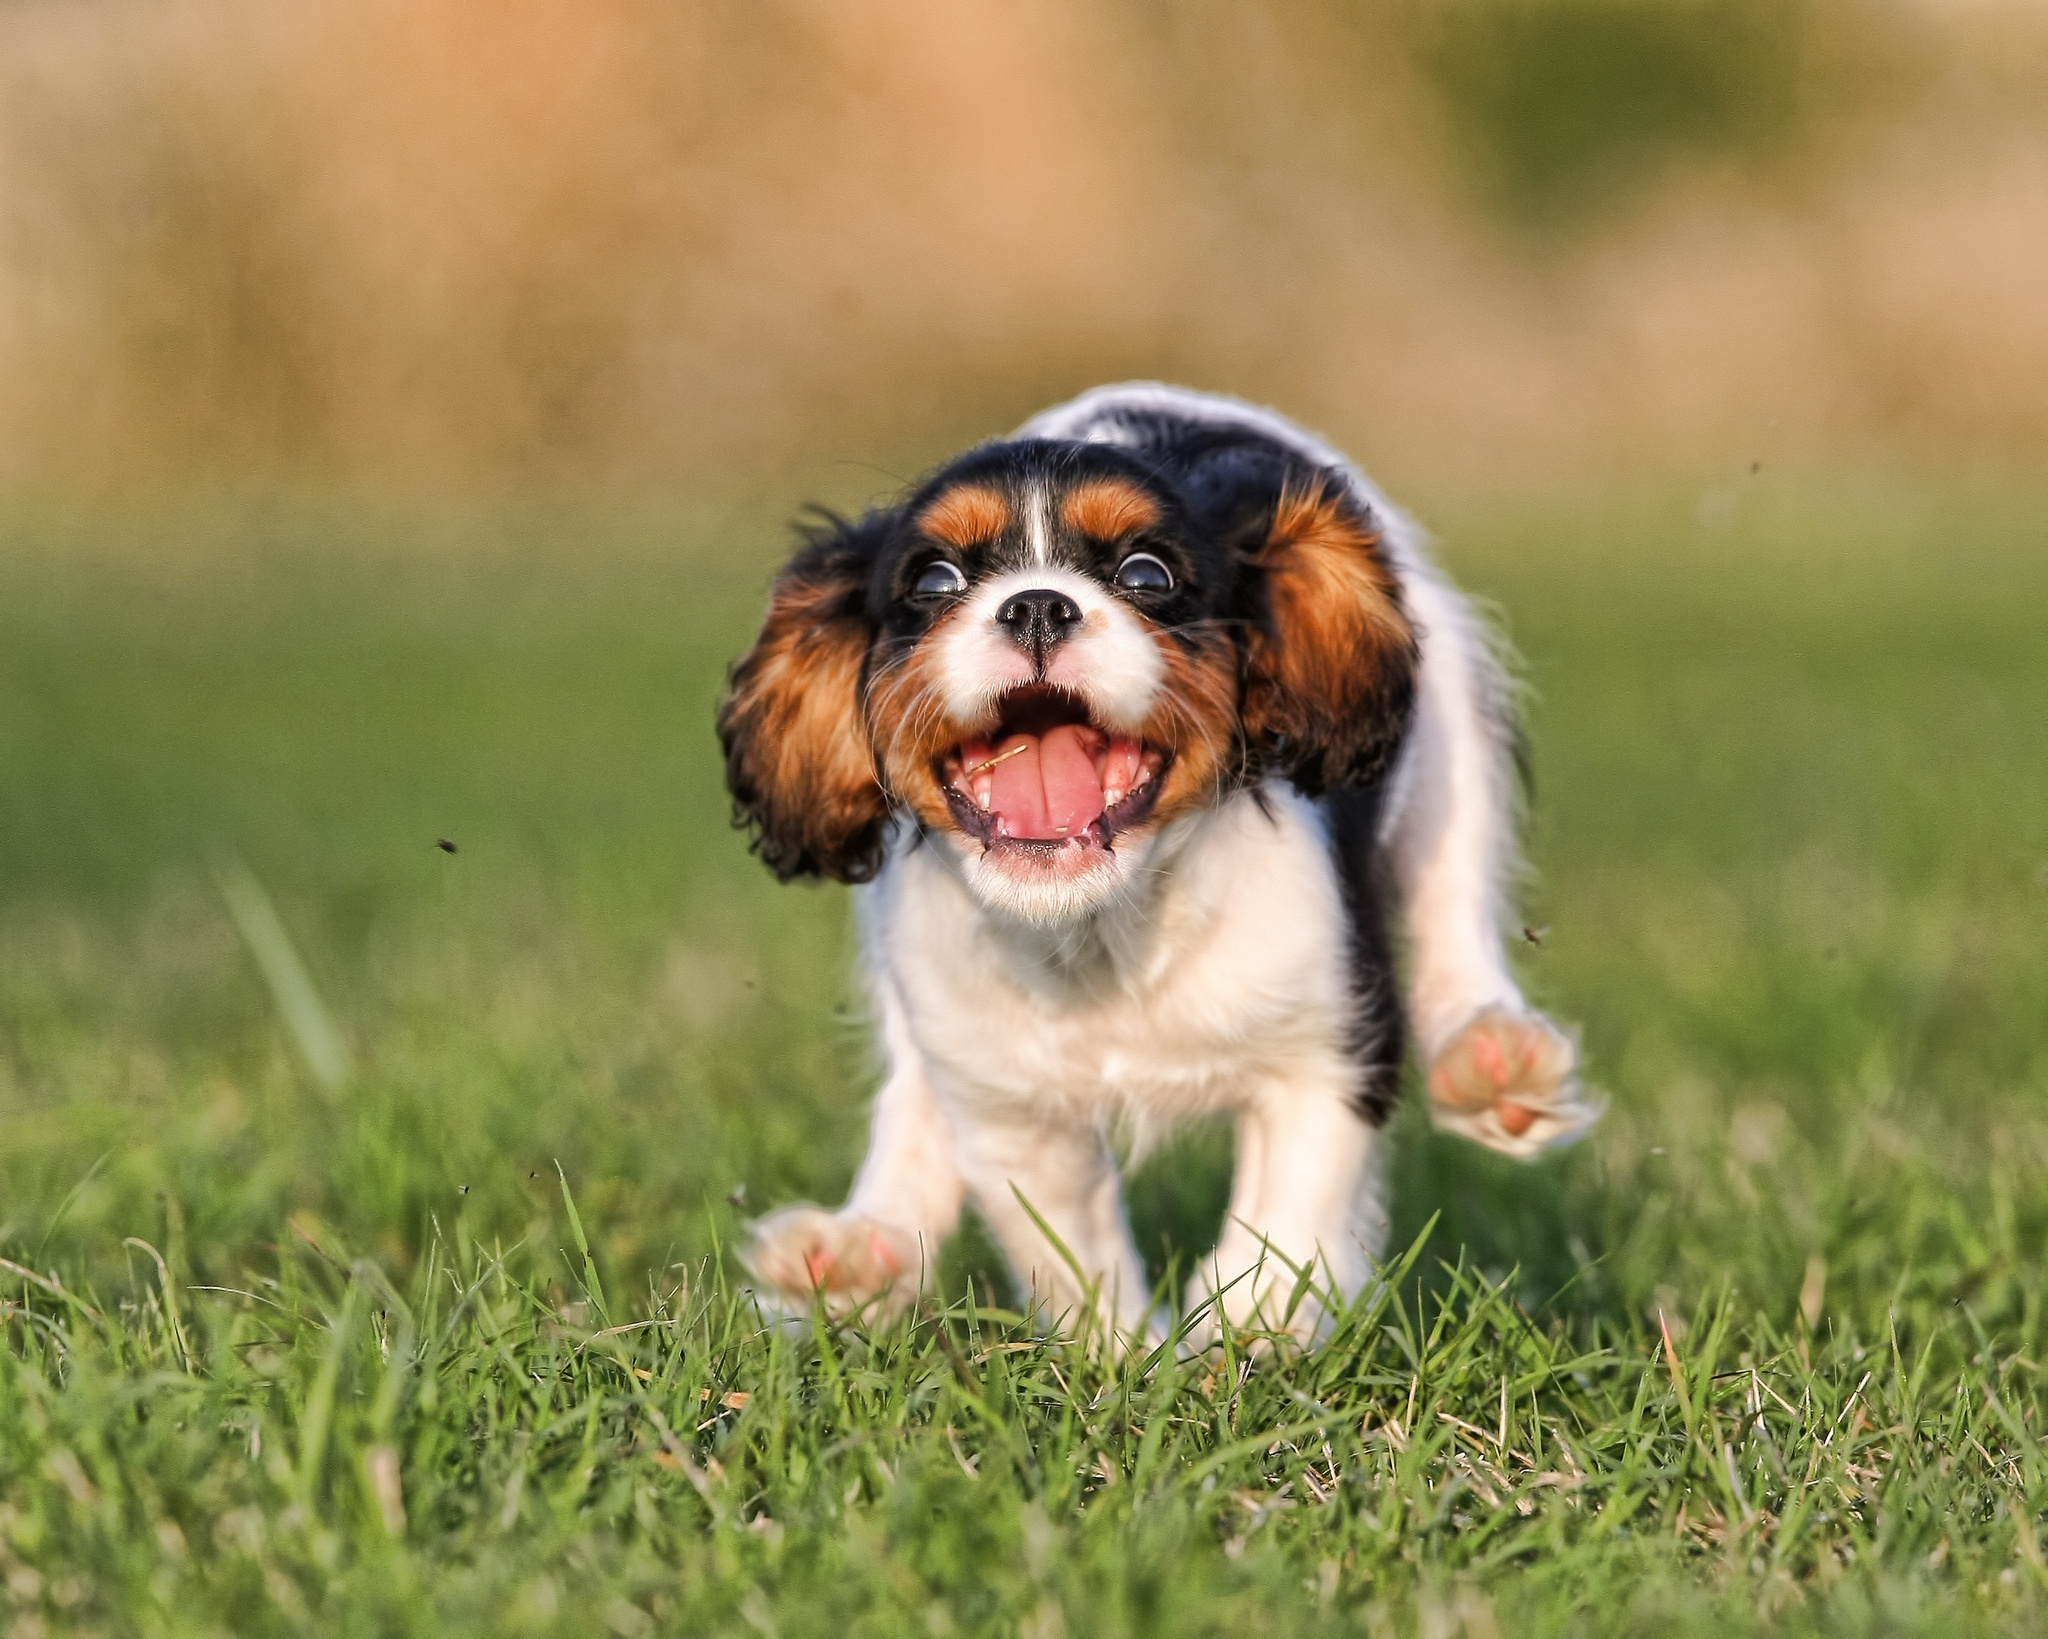 155710 download wallpaper Animals, Puppy, Grass, Run, Running, Bounce, Jump screensavers and pictures for free